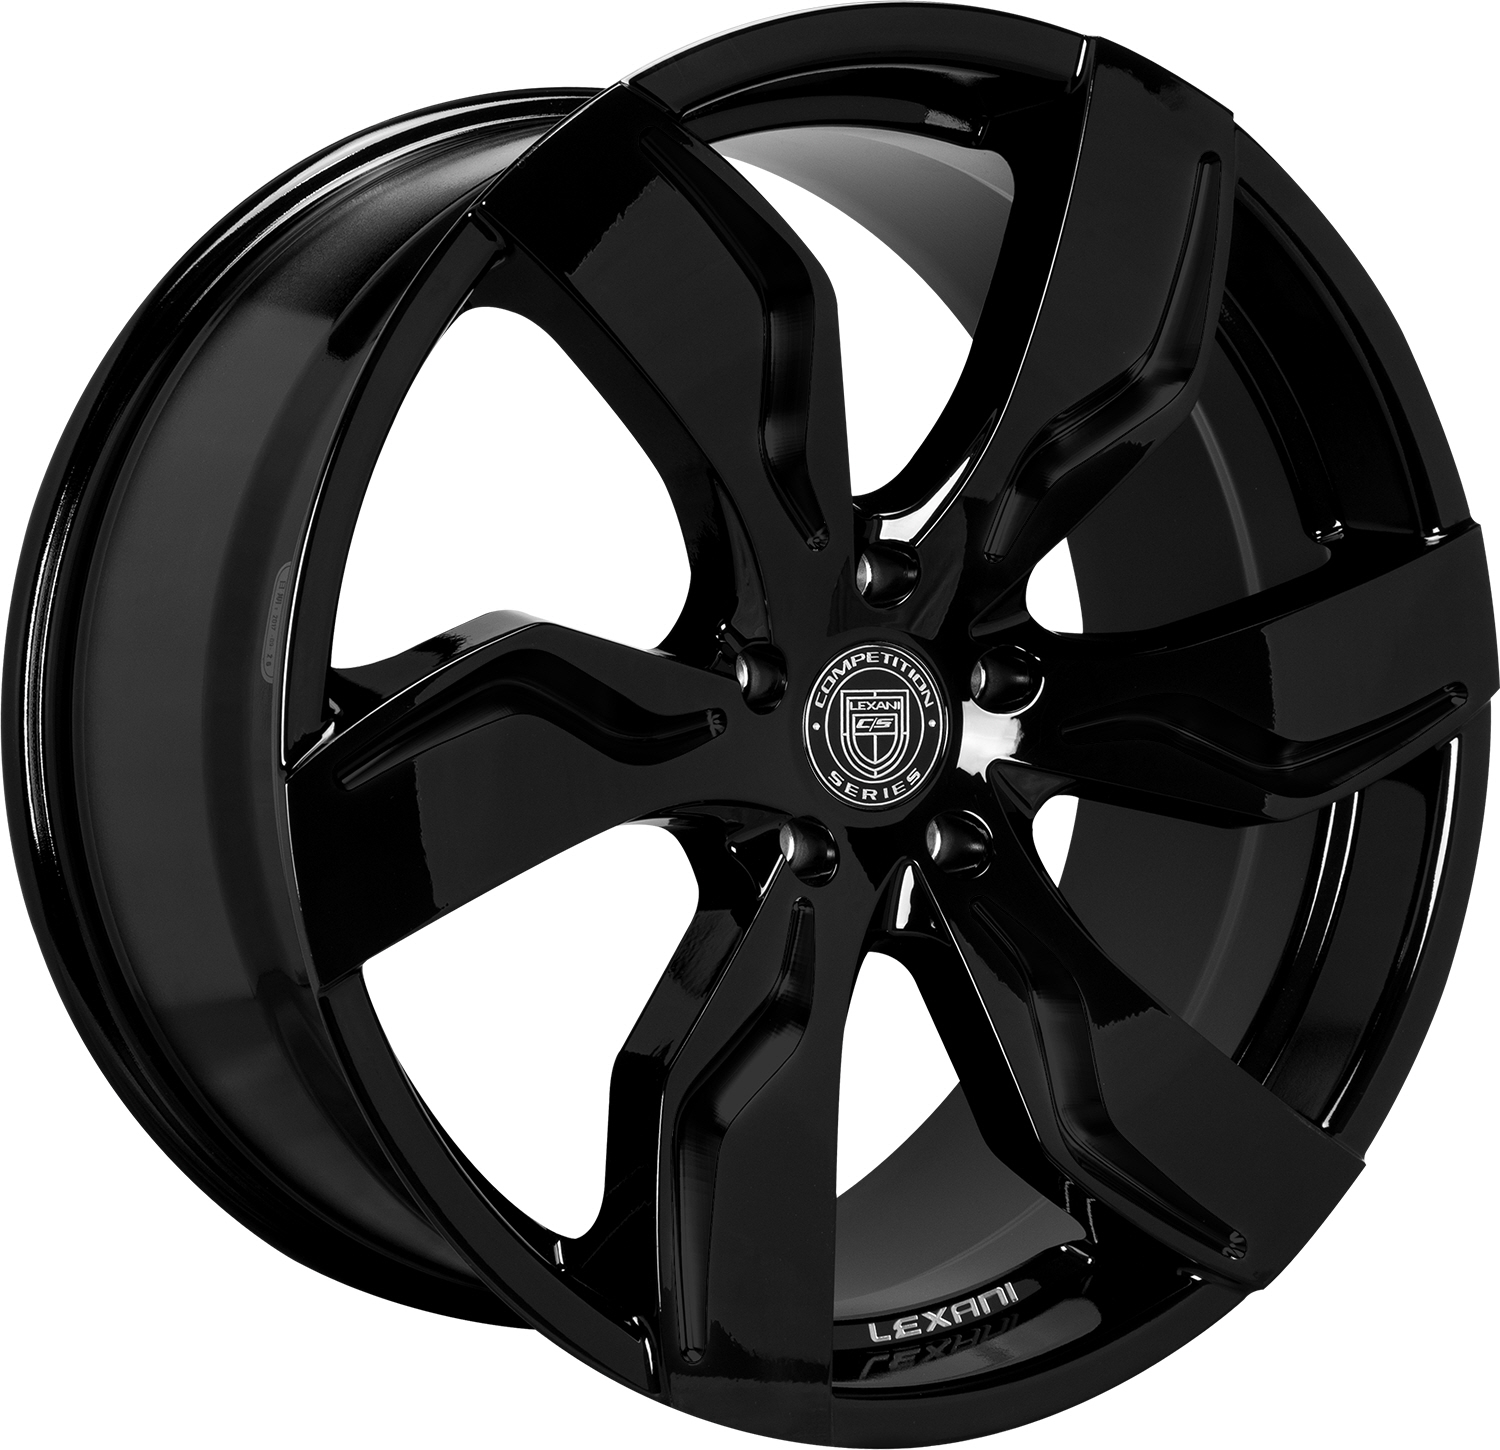 675 - ZAGATO  WHEELS AND RIMS PACKAGES